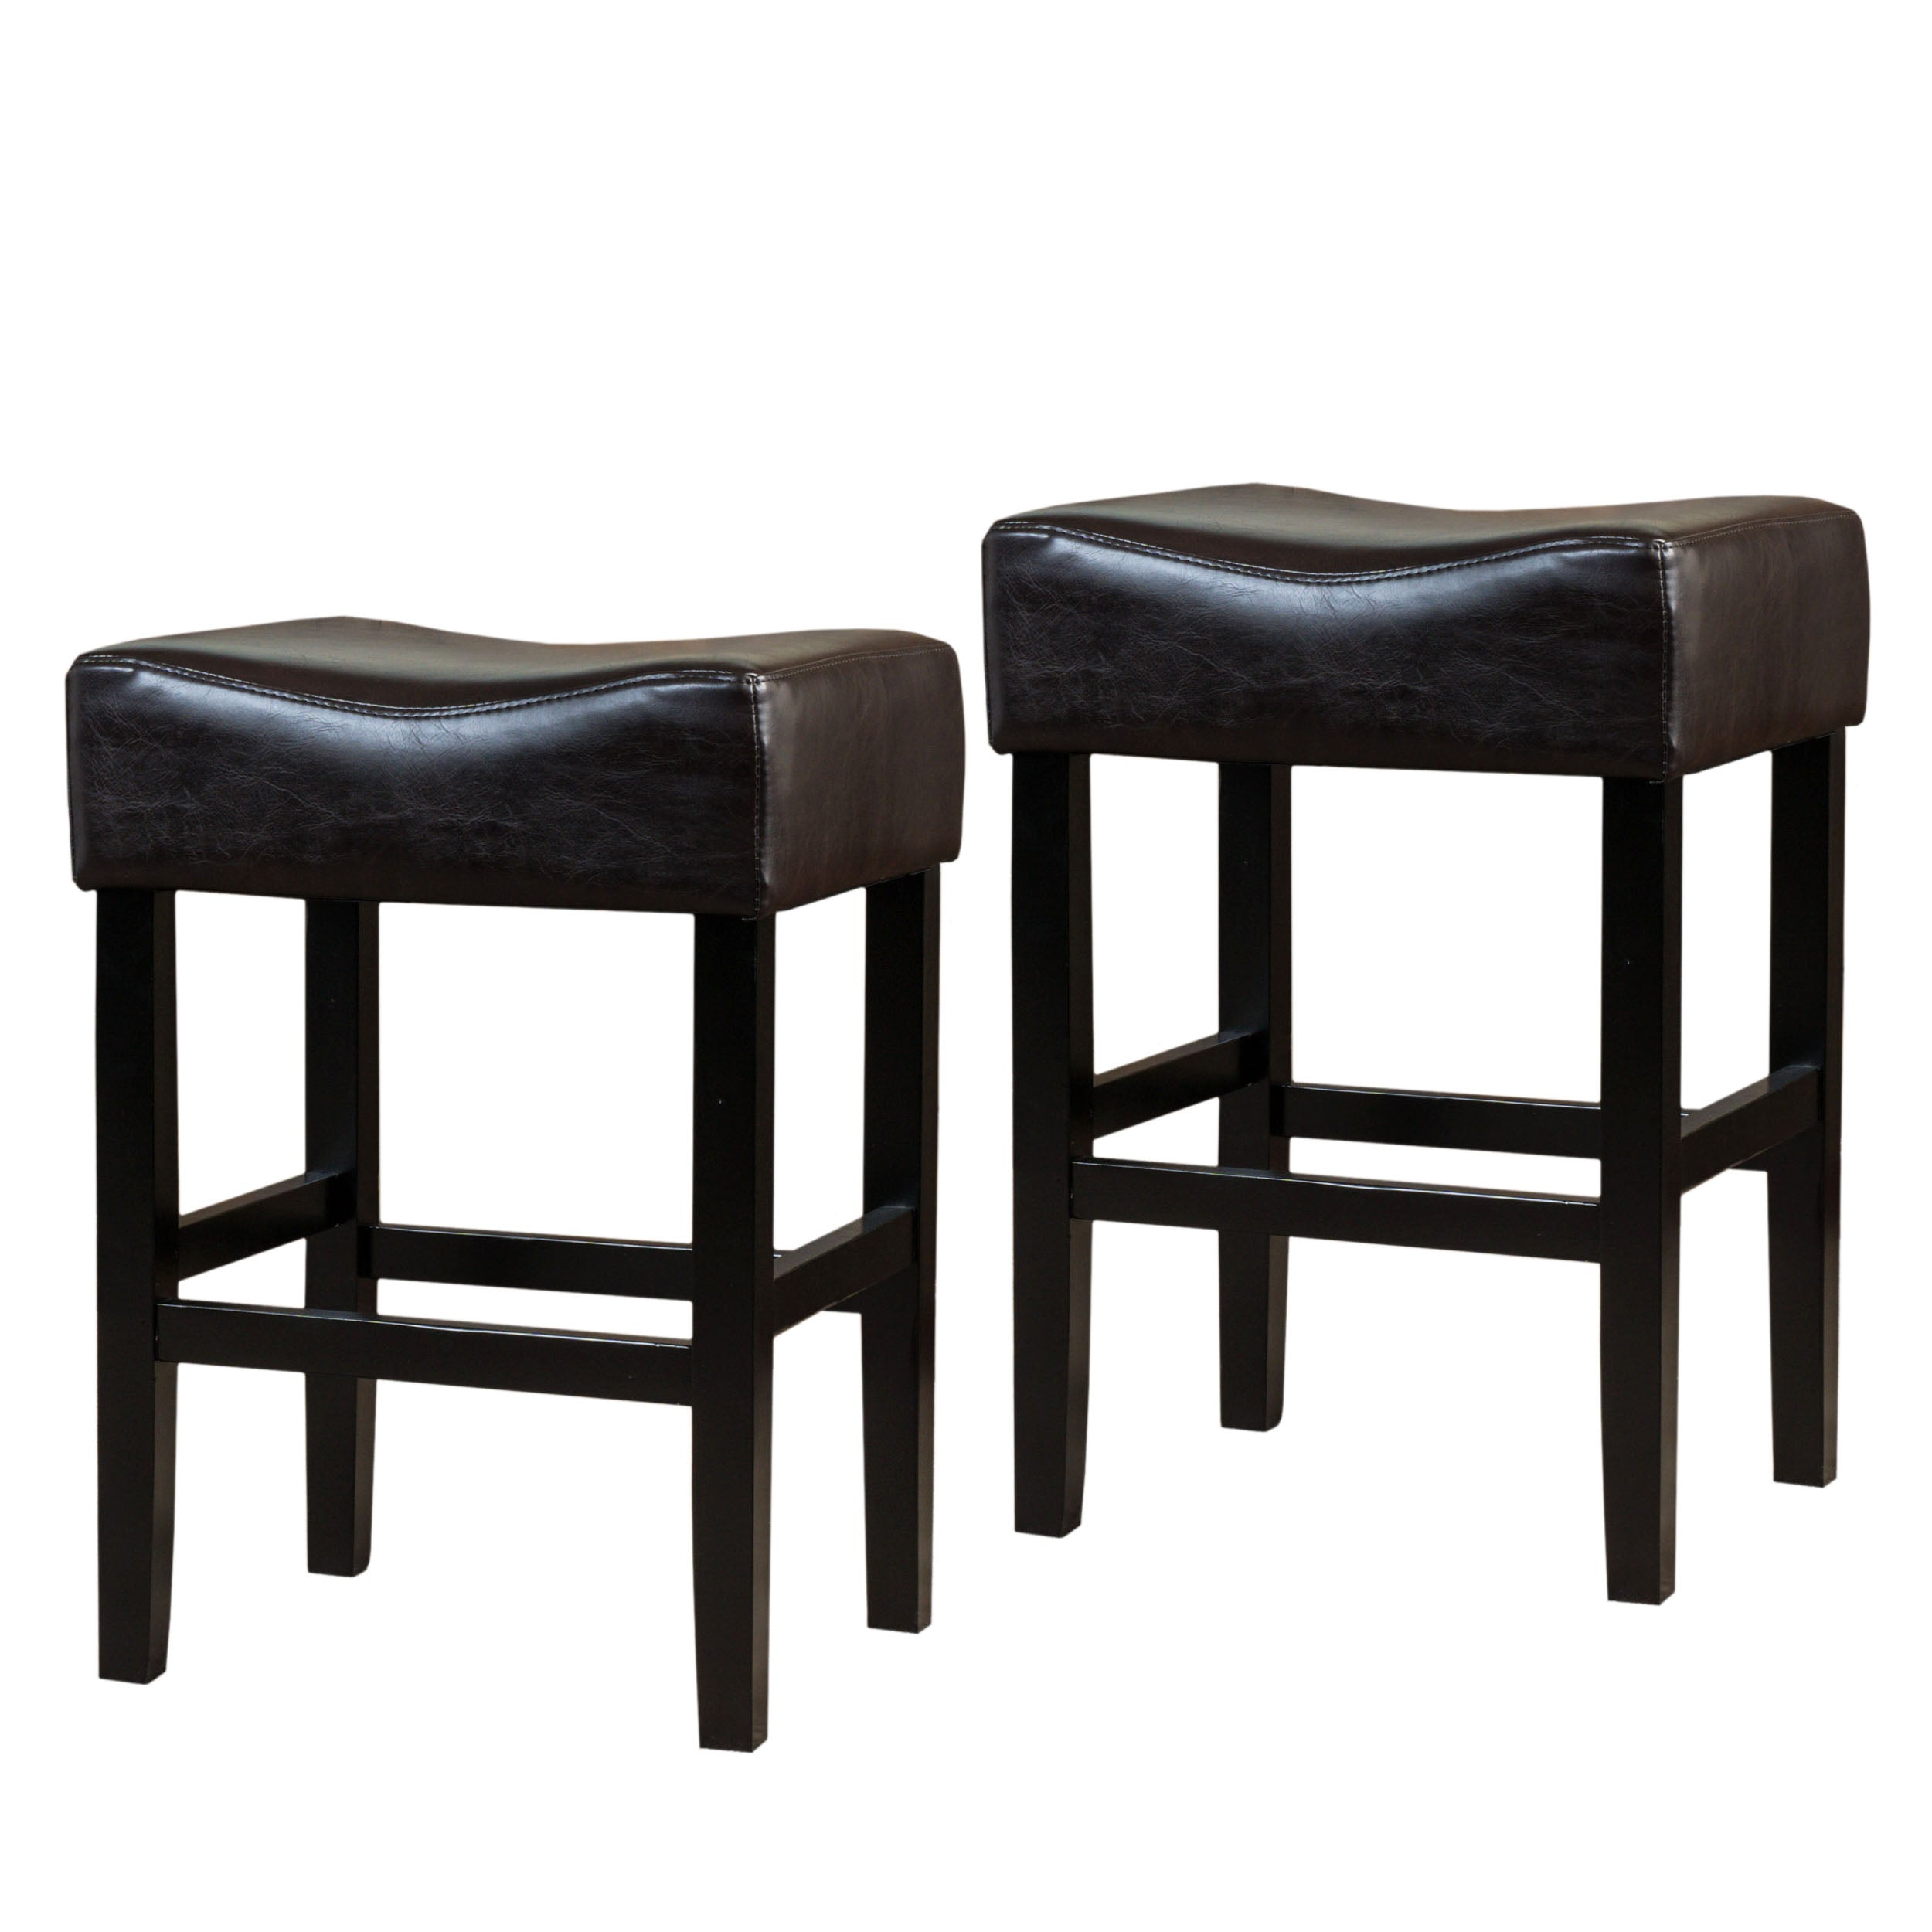 Adler 26 Inch Brown Leather Backless Counter Stool Set of 2